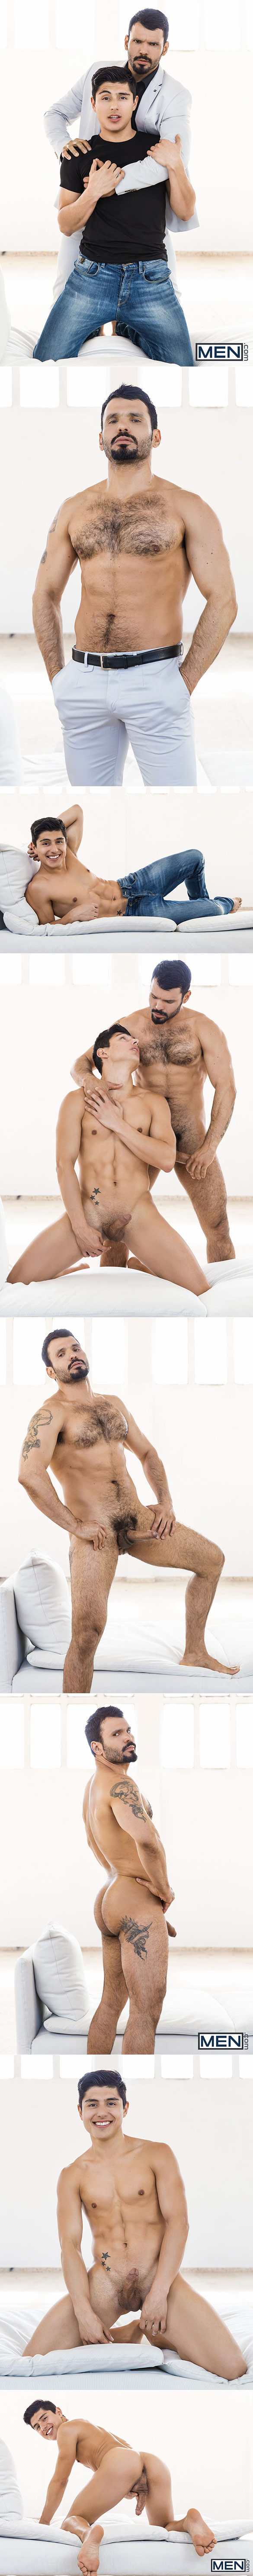 "Men.com: Jean Franko pounds Ken Summers in ""The Parlor, Part 3"""